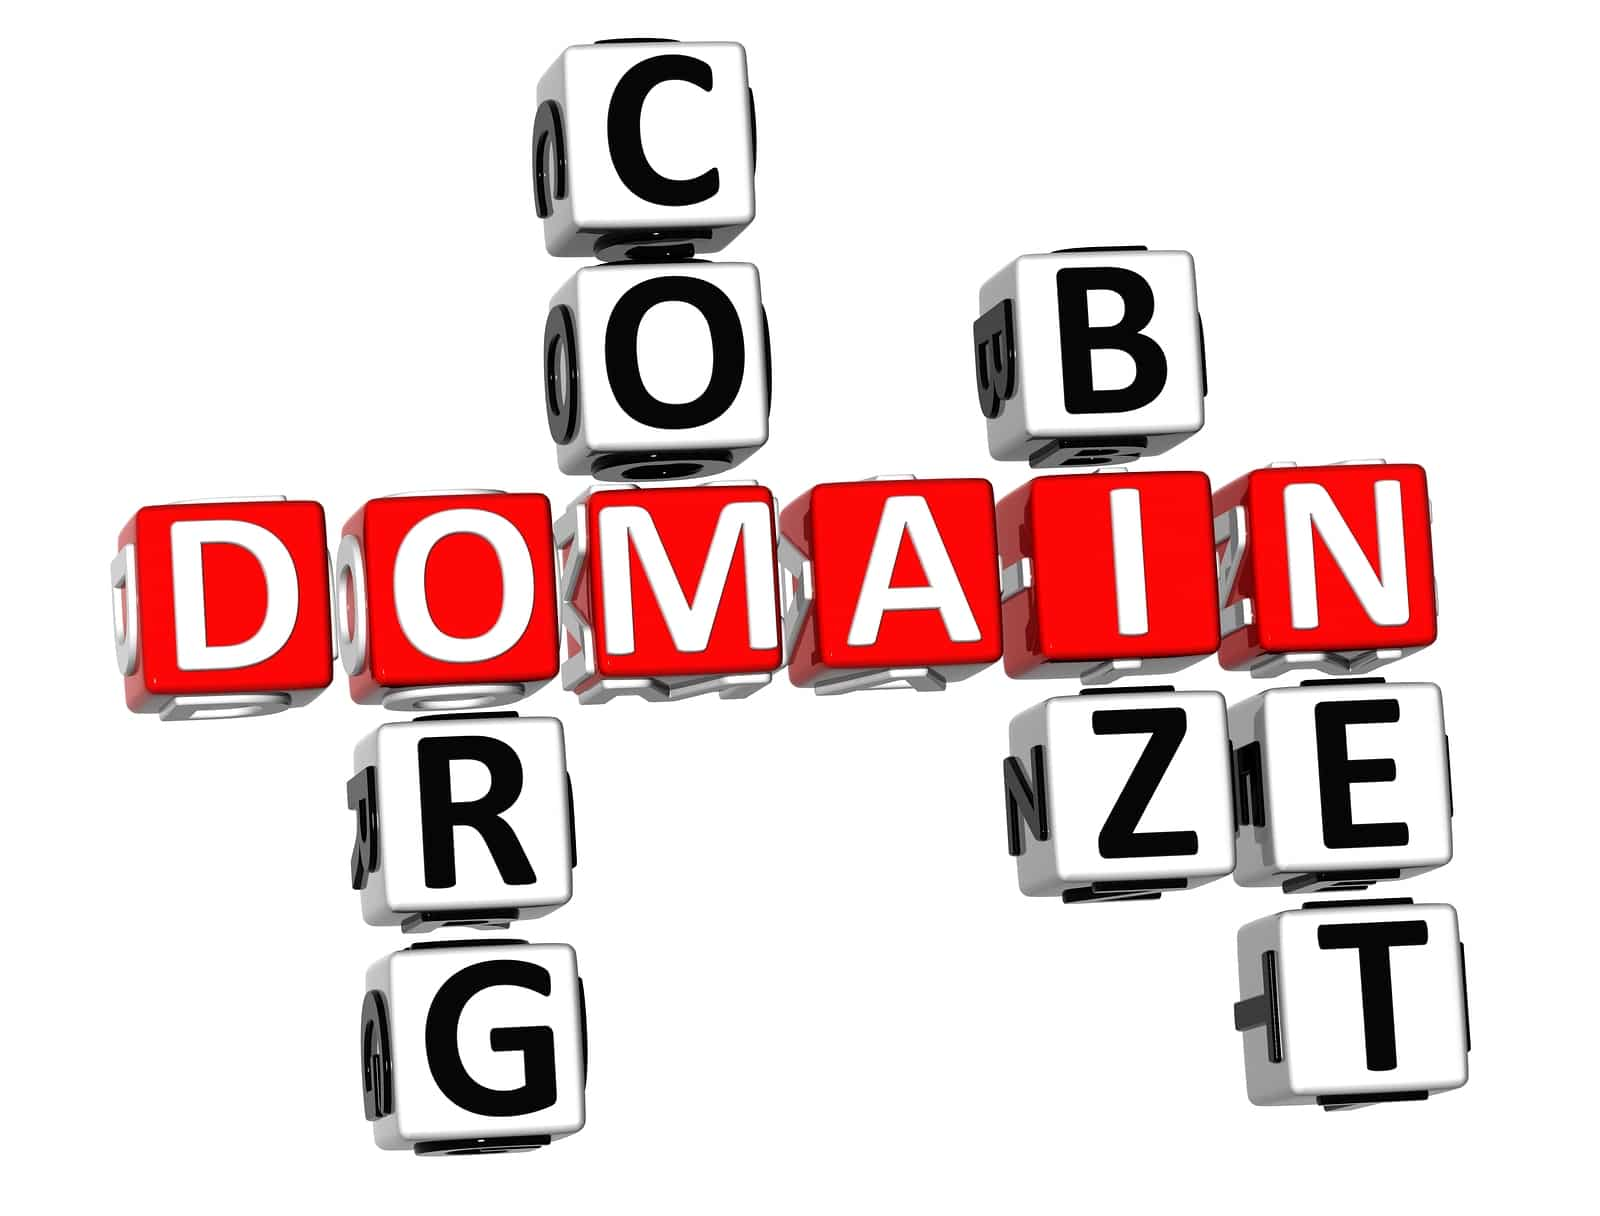 What is the value of a domain name